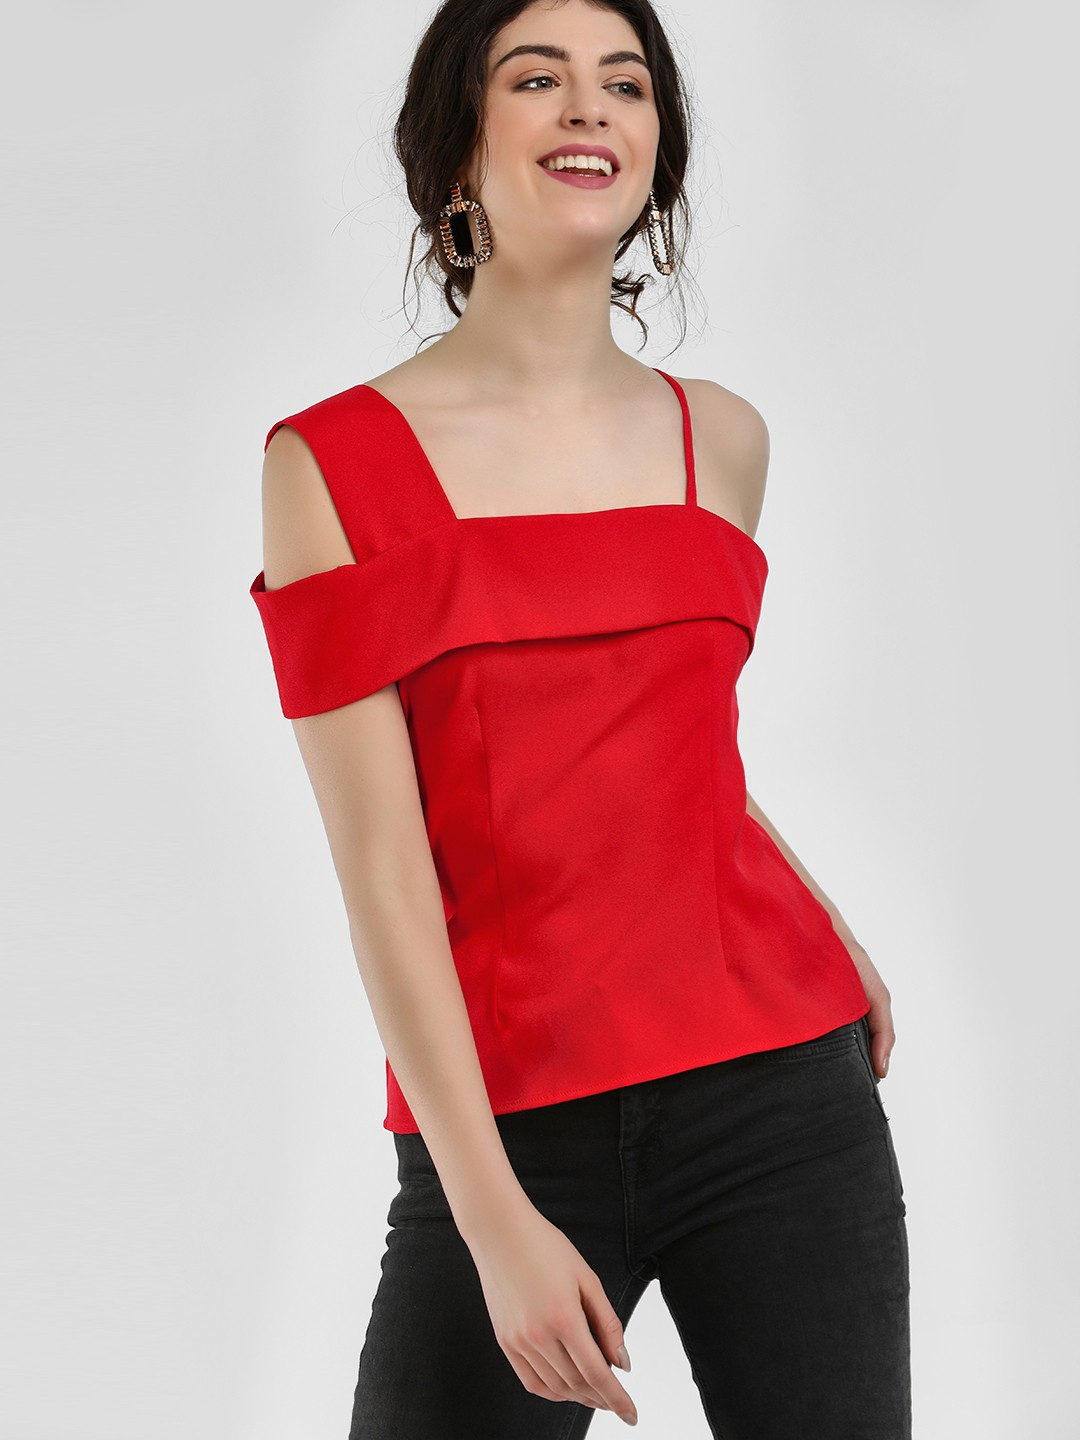 Ri-Dress Red One Shoulder Strappy Blouse 1